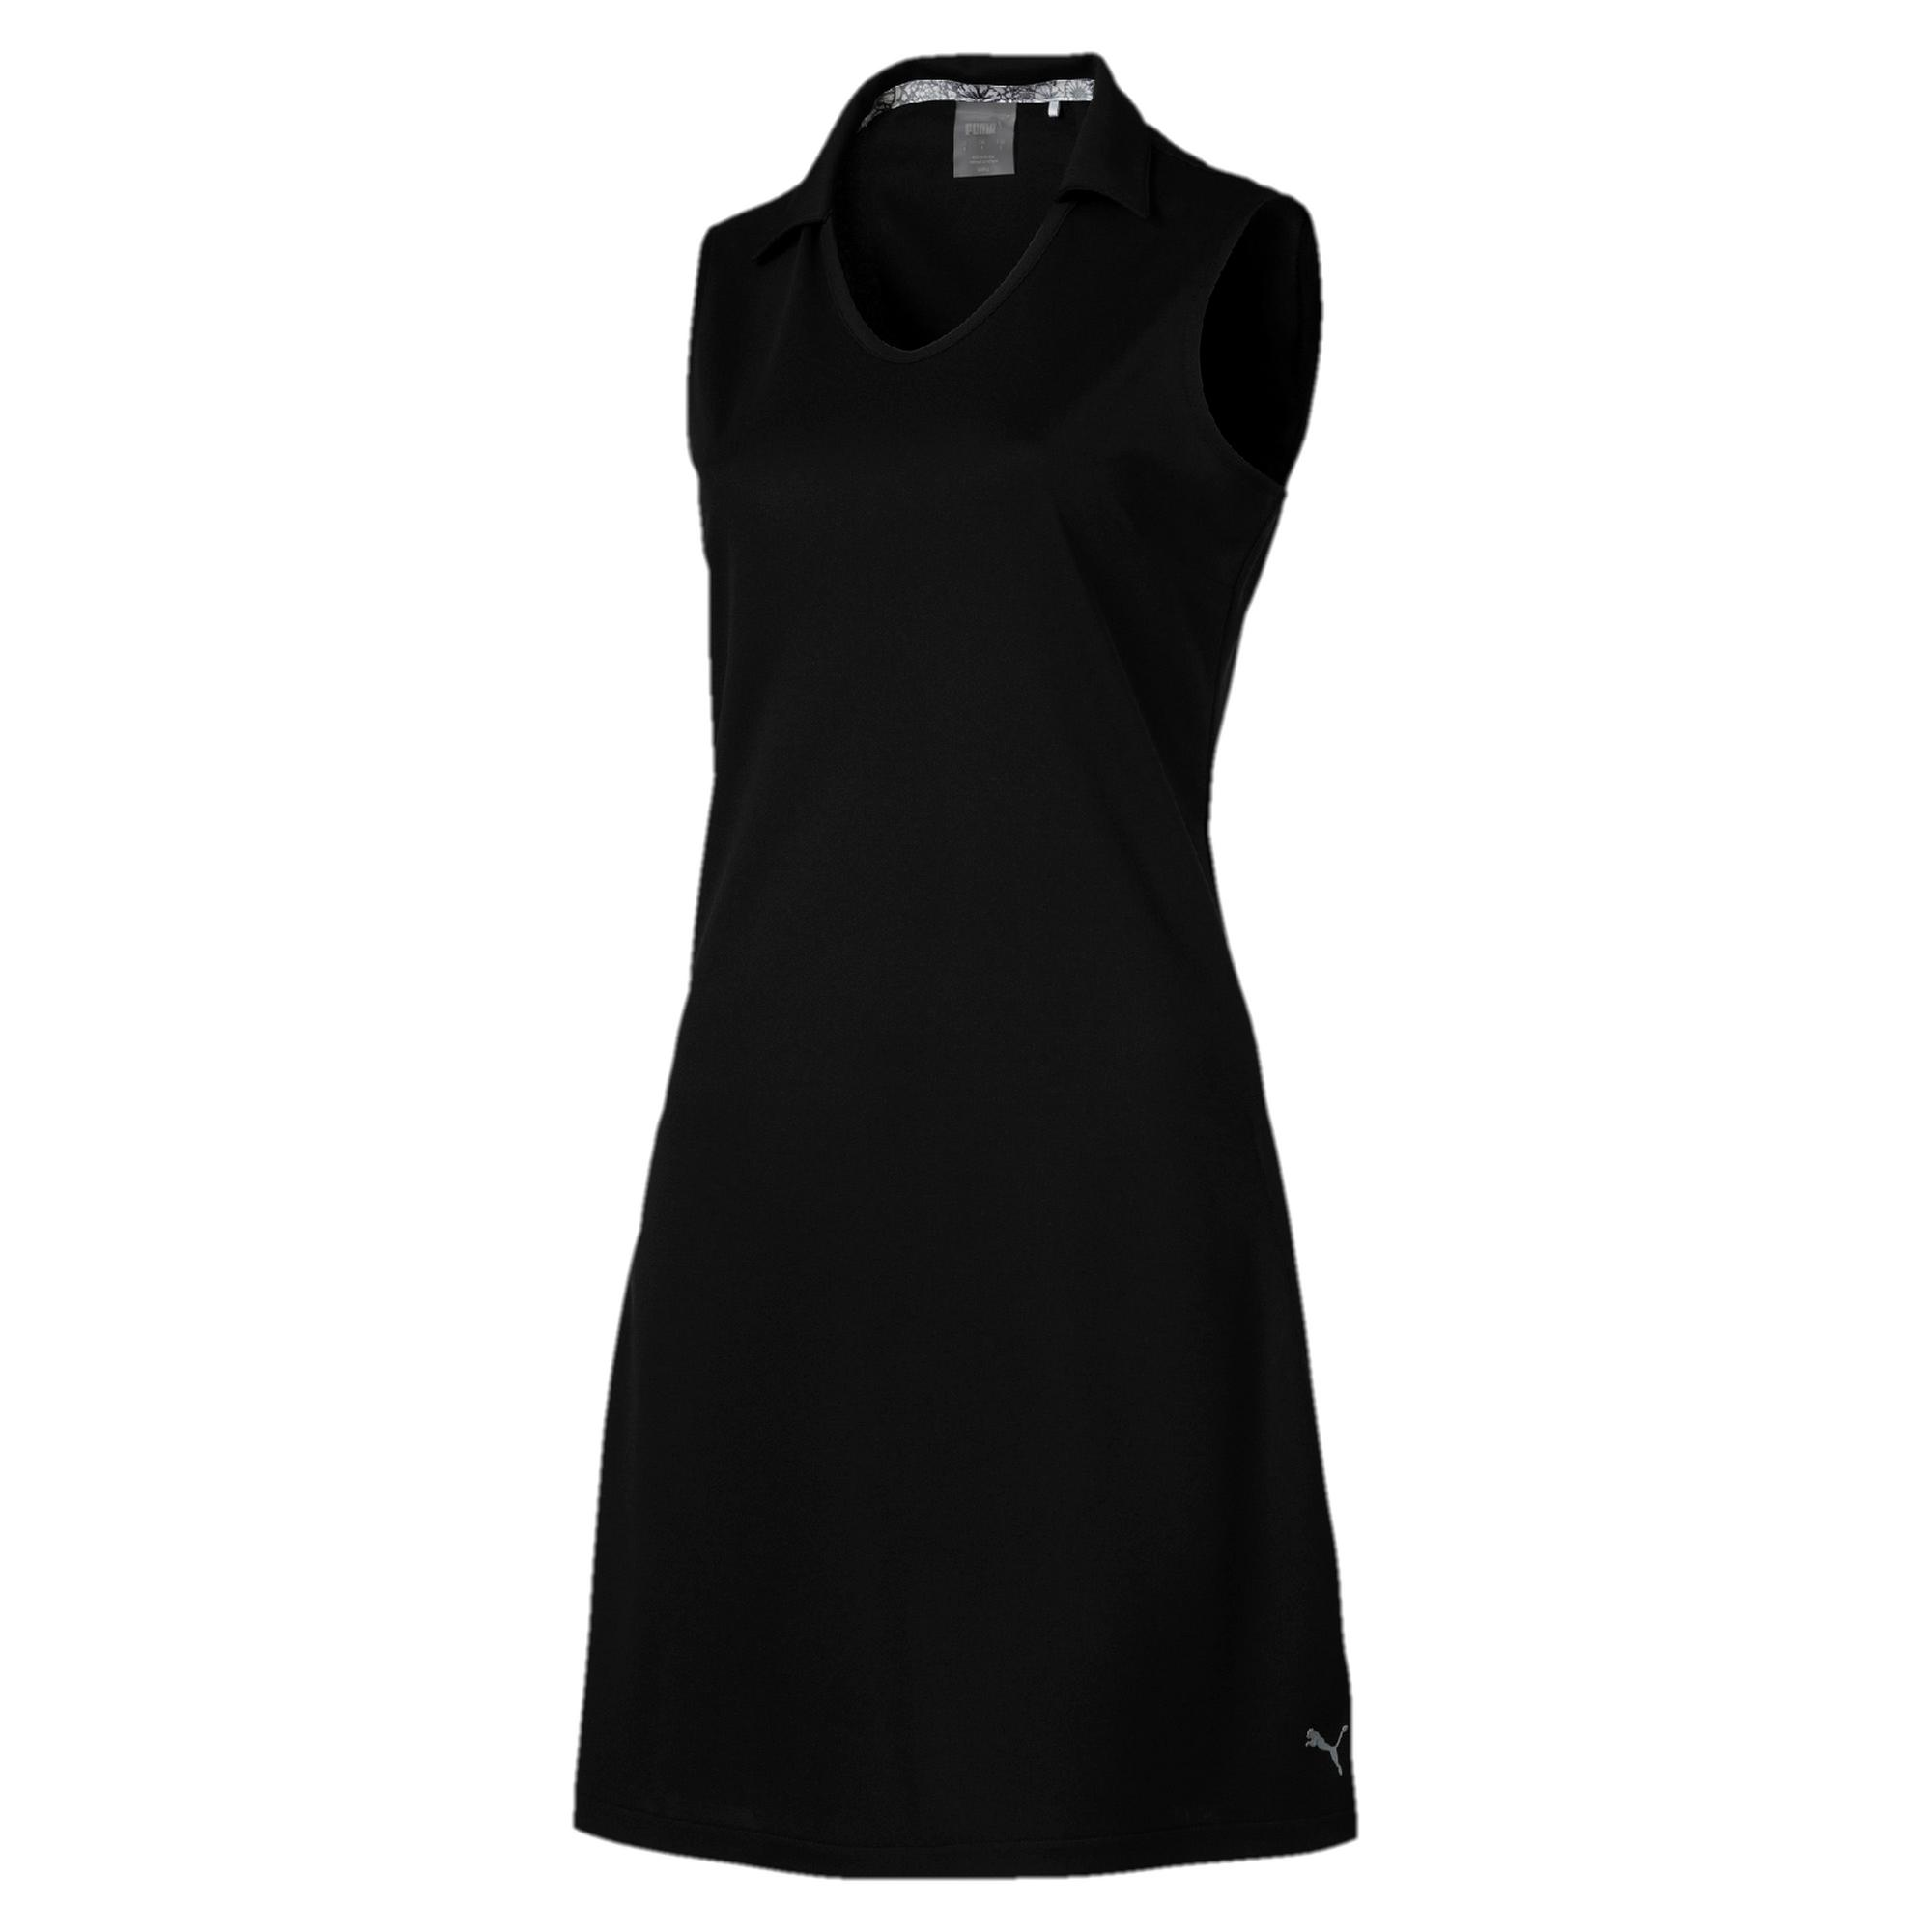 Women's Fair Days and Fairways Sleeveless Dress